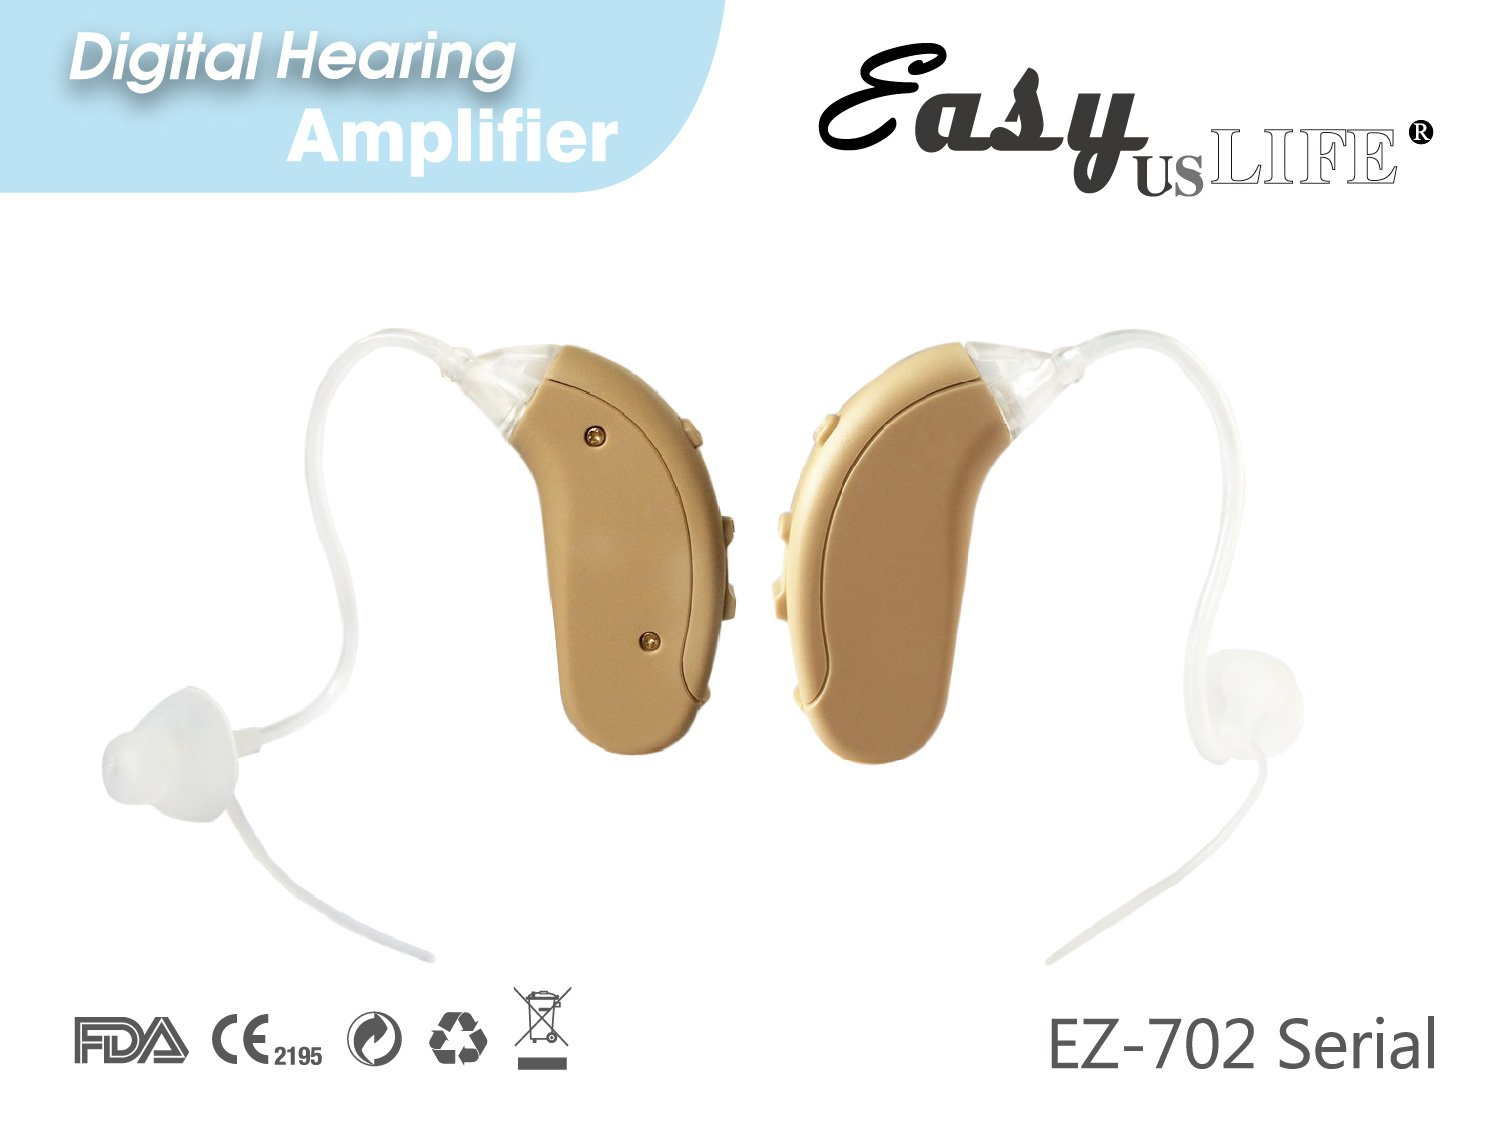 Easyuslife Ear Amplifiers Set Of 2 Hearing Amplifiers Devices With Digital Noise Cancellation , Discreet and Lightweight Ear Amplifying Machine With Volume and Frequency Control System by EASYUSLIFE